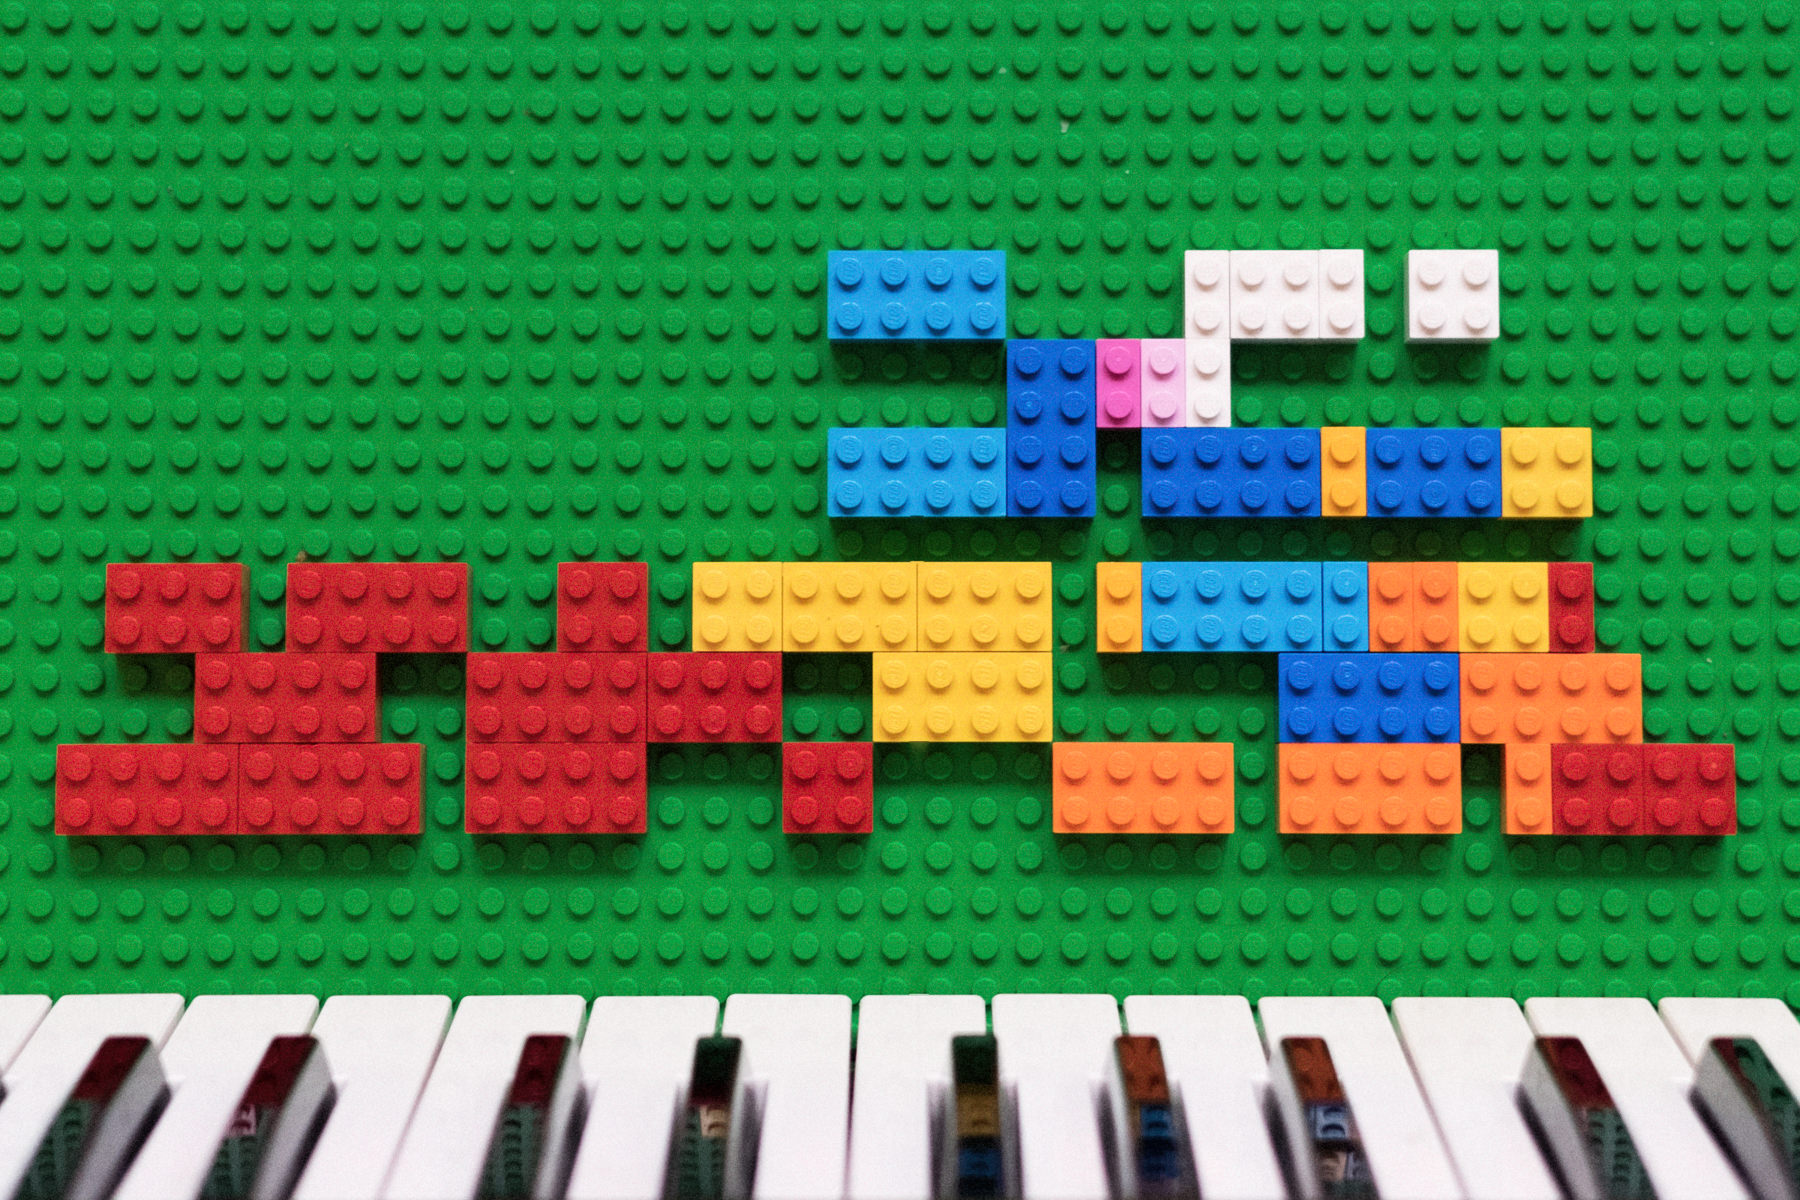 Song structures like Lego blocks